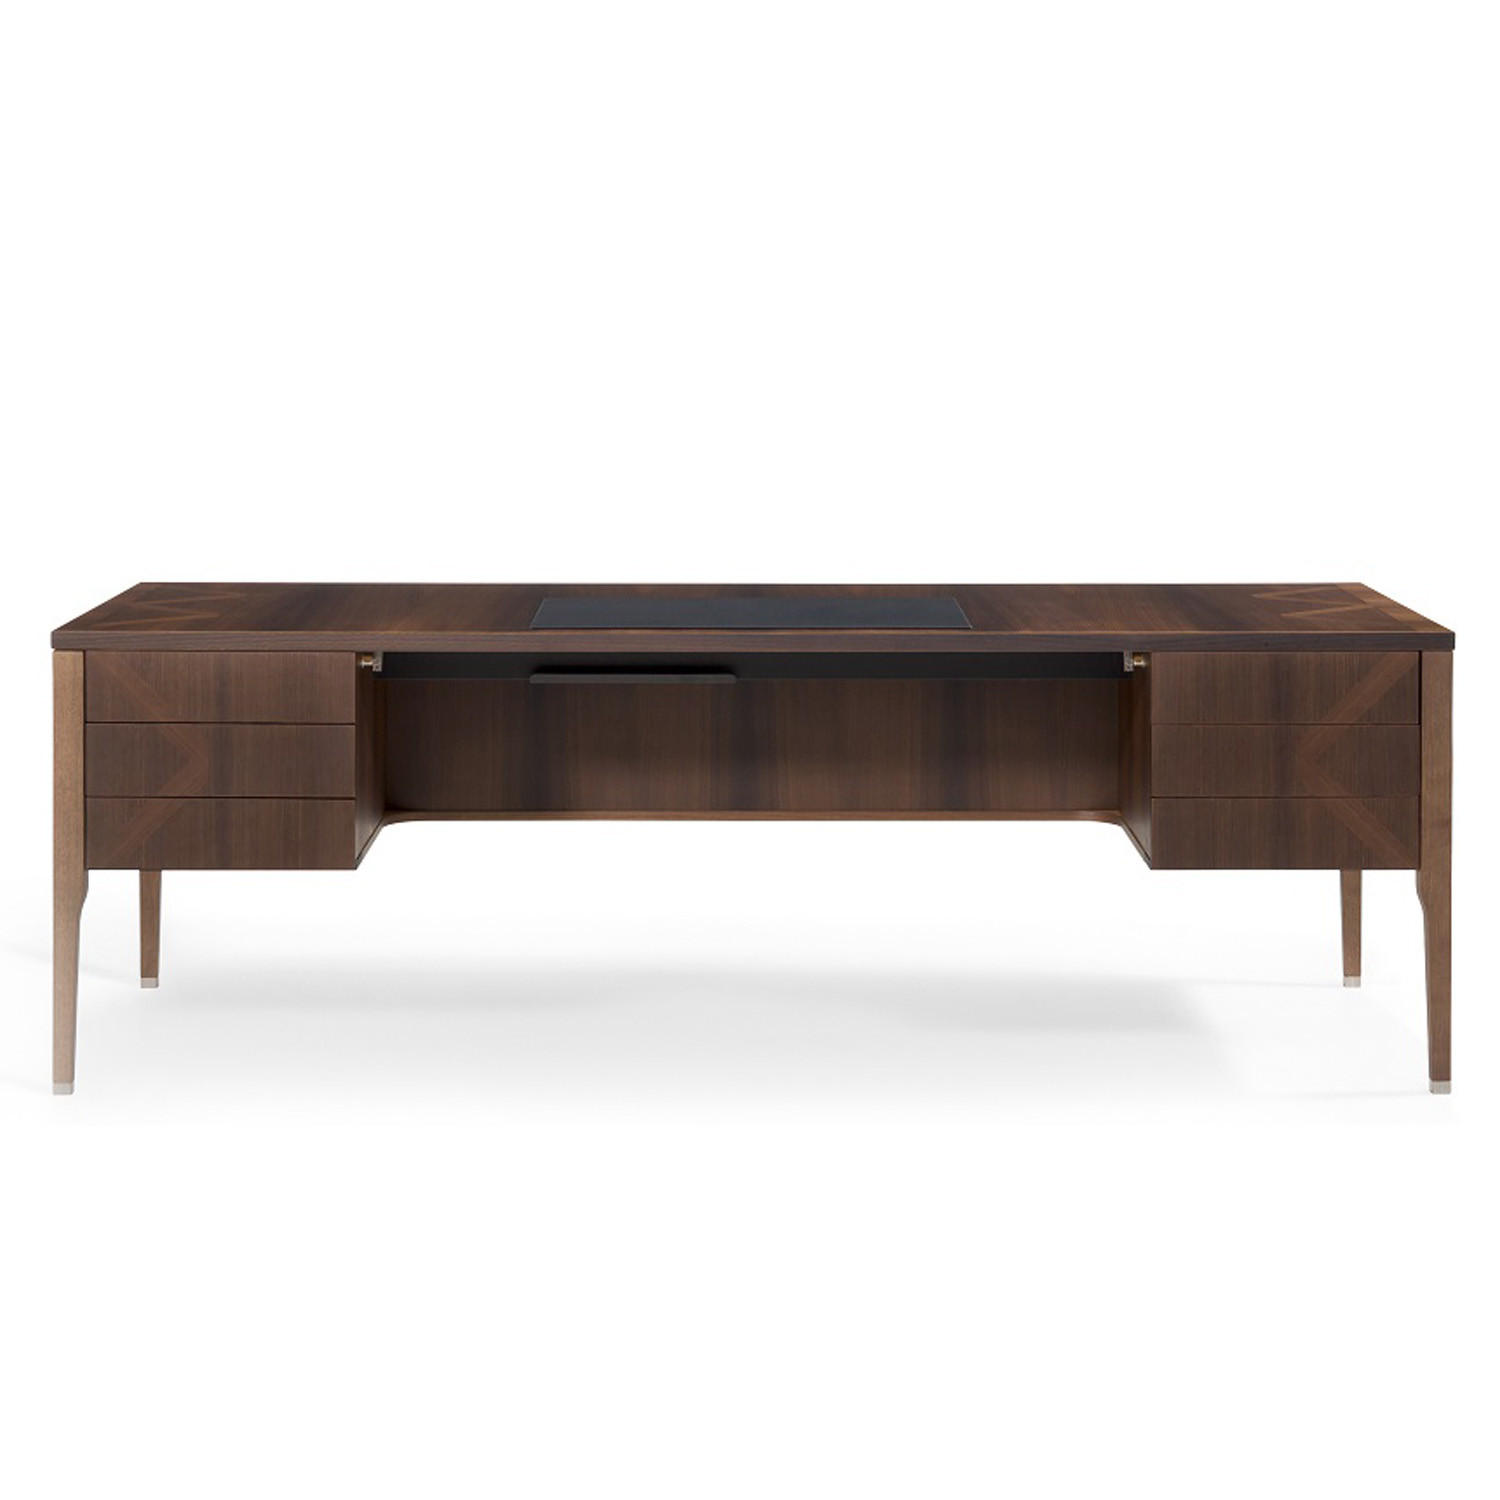 Pera Executive Wooden Desk by Faruk Malhan